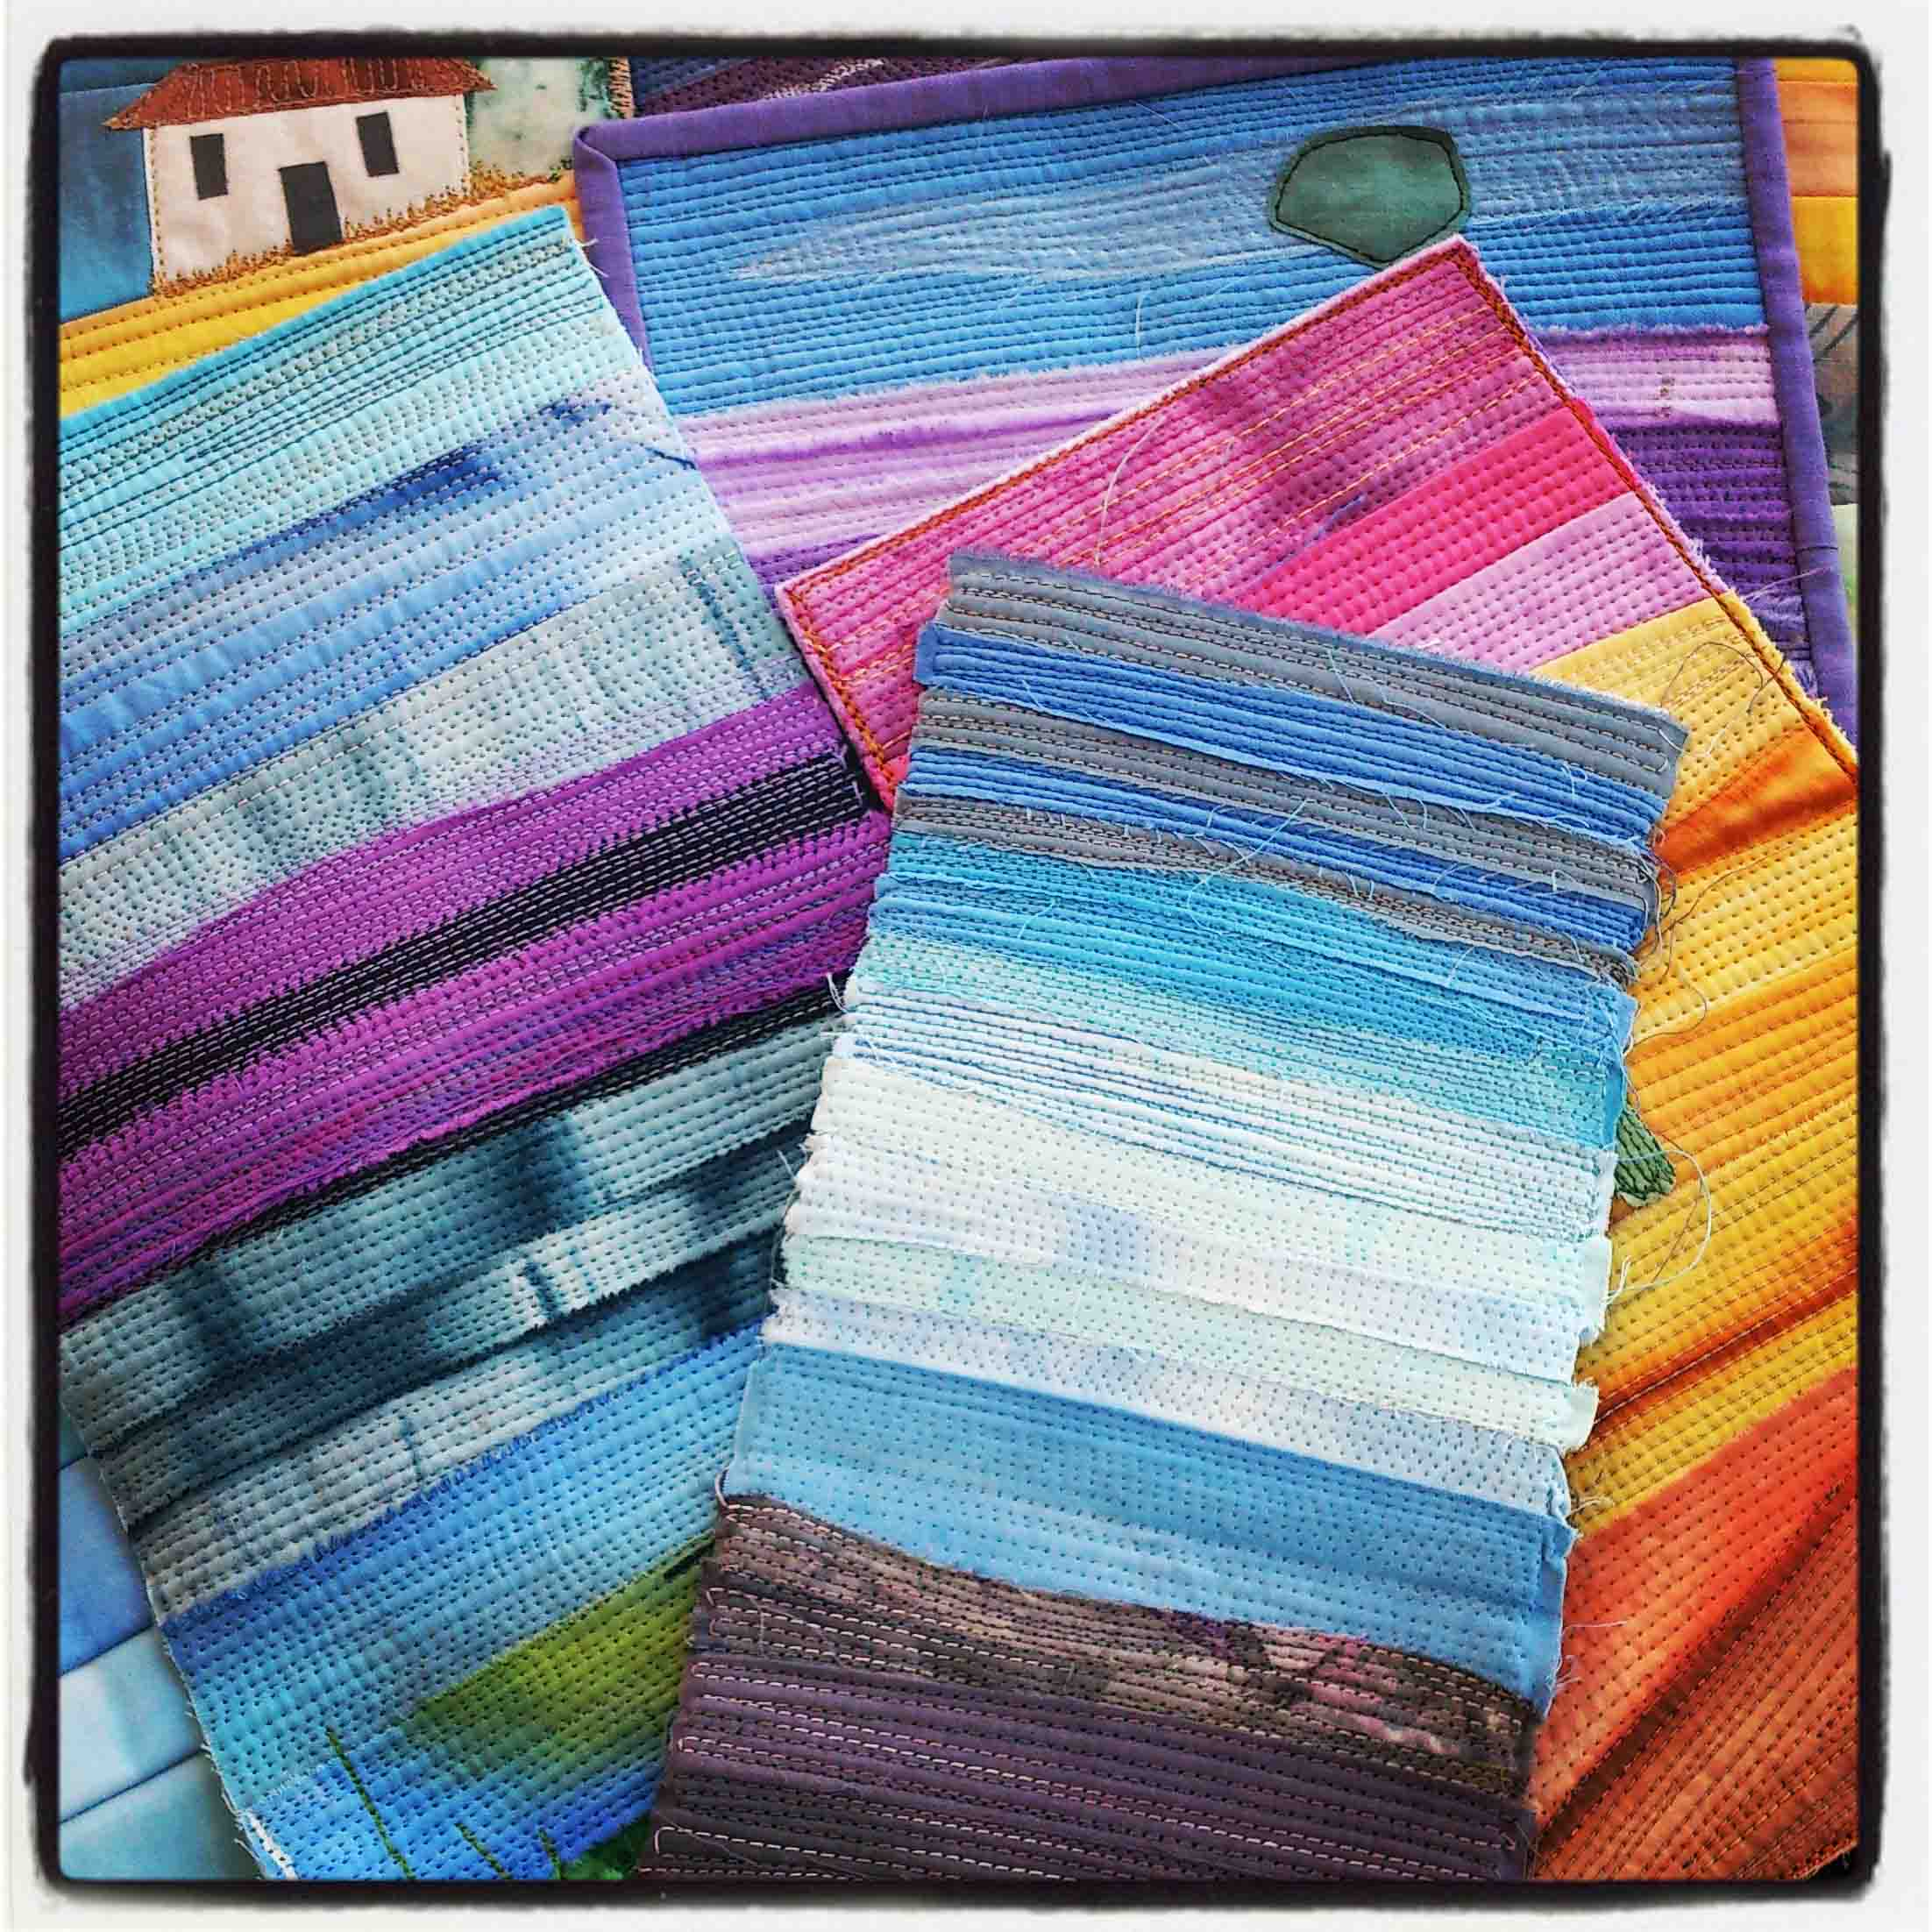 Strip Landscapes - A fun and easy class that demonstrates a simple but effective way to produce a mini landscape quilt.Using a variety of techniques from piecing, to raw edges, applique and added embellishments. This class also looks at some alternative ways for finishing off and displaying your creations.